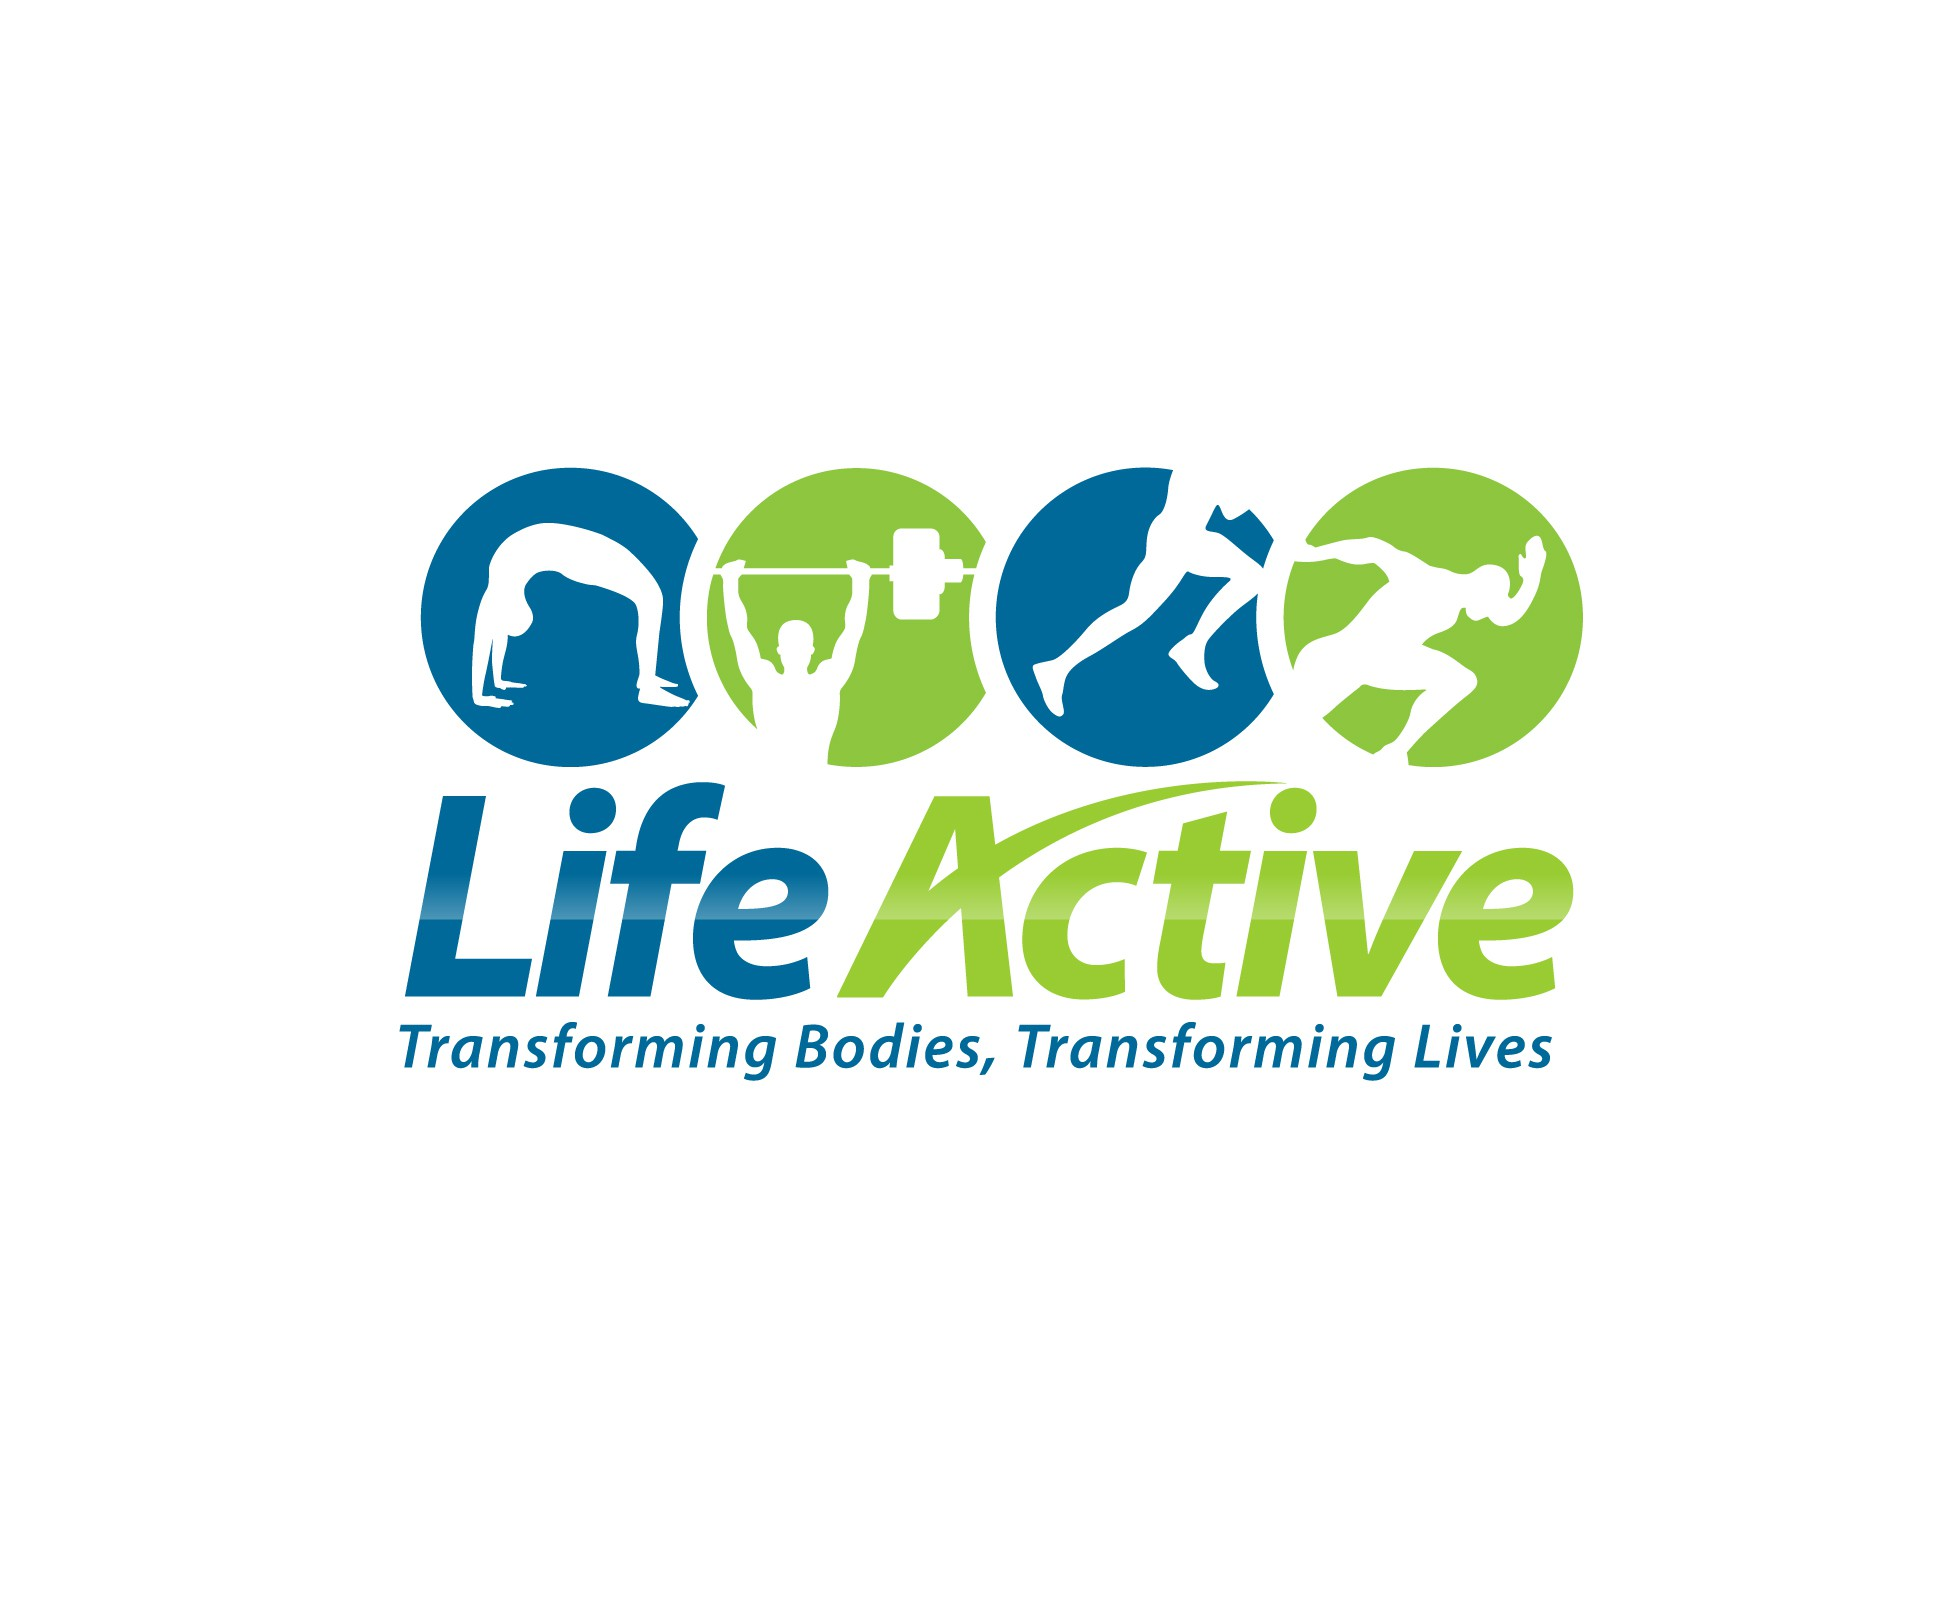 New logo wanted for Life Active